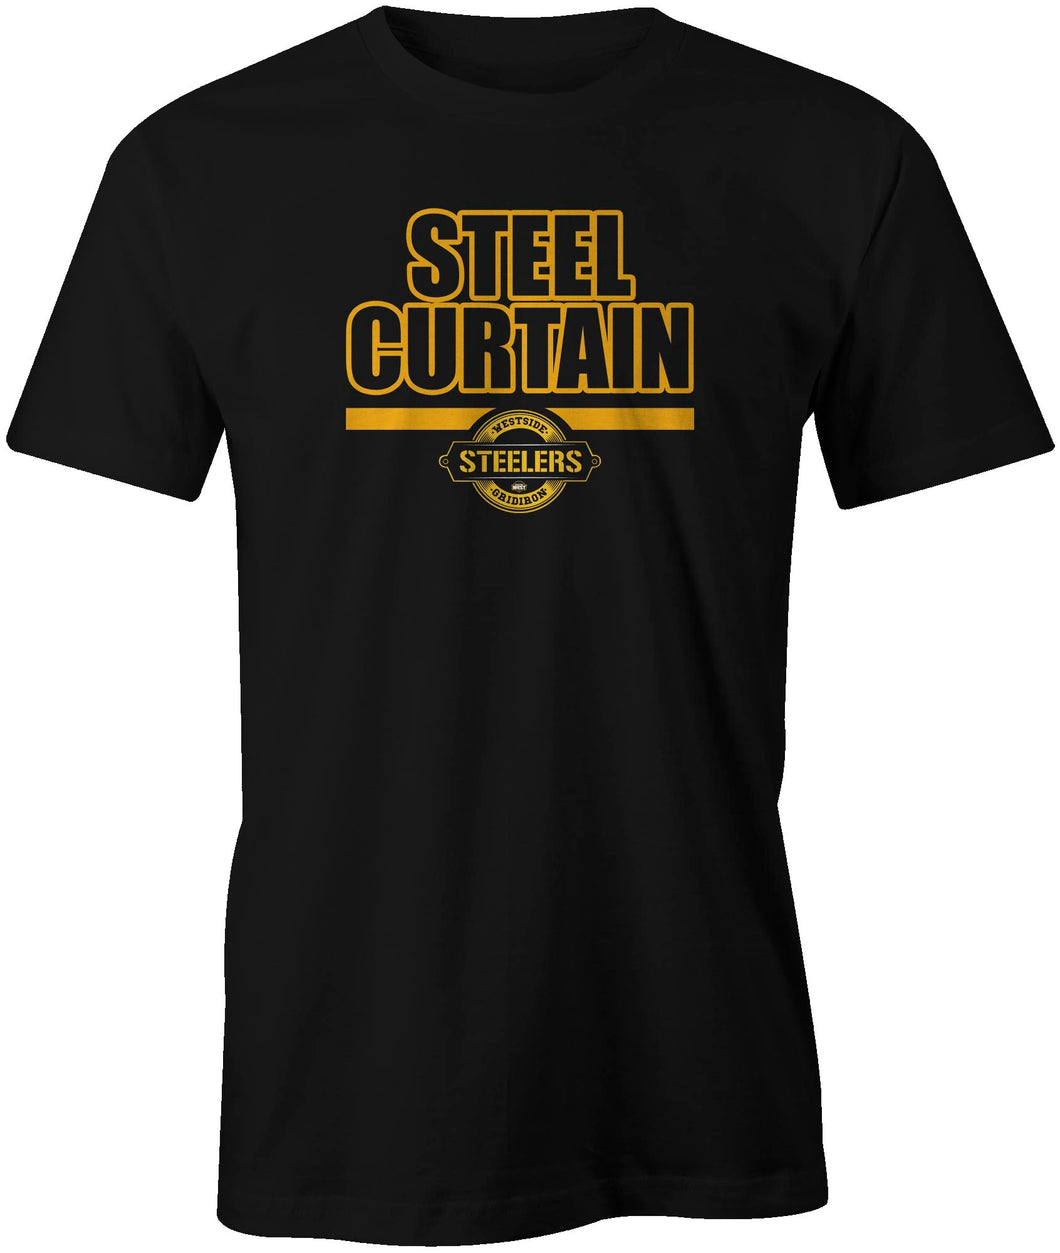 Westside Steelers Steel Curtain T-Shirt